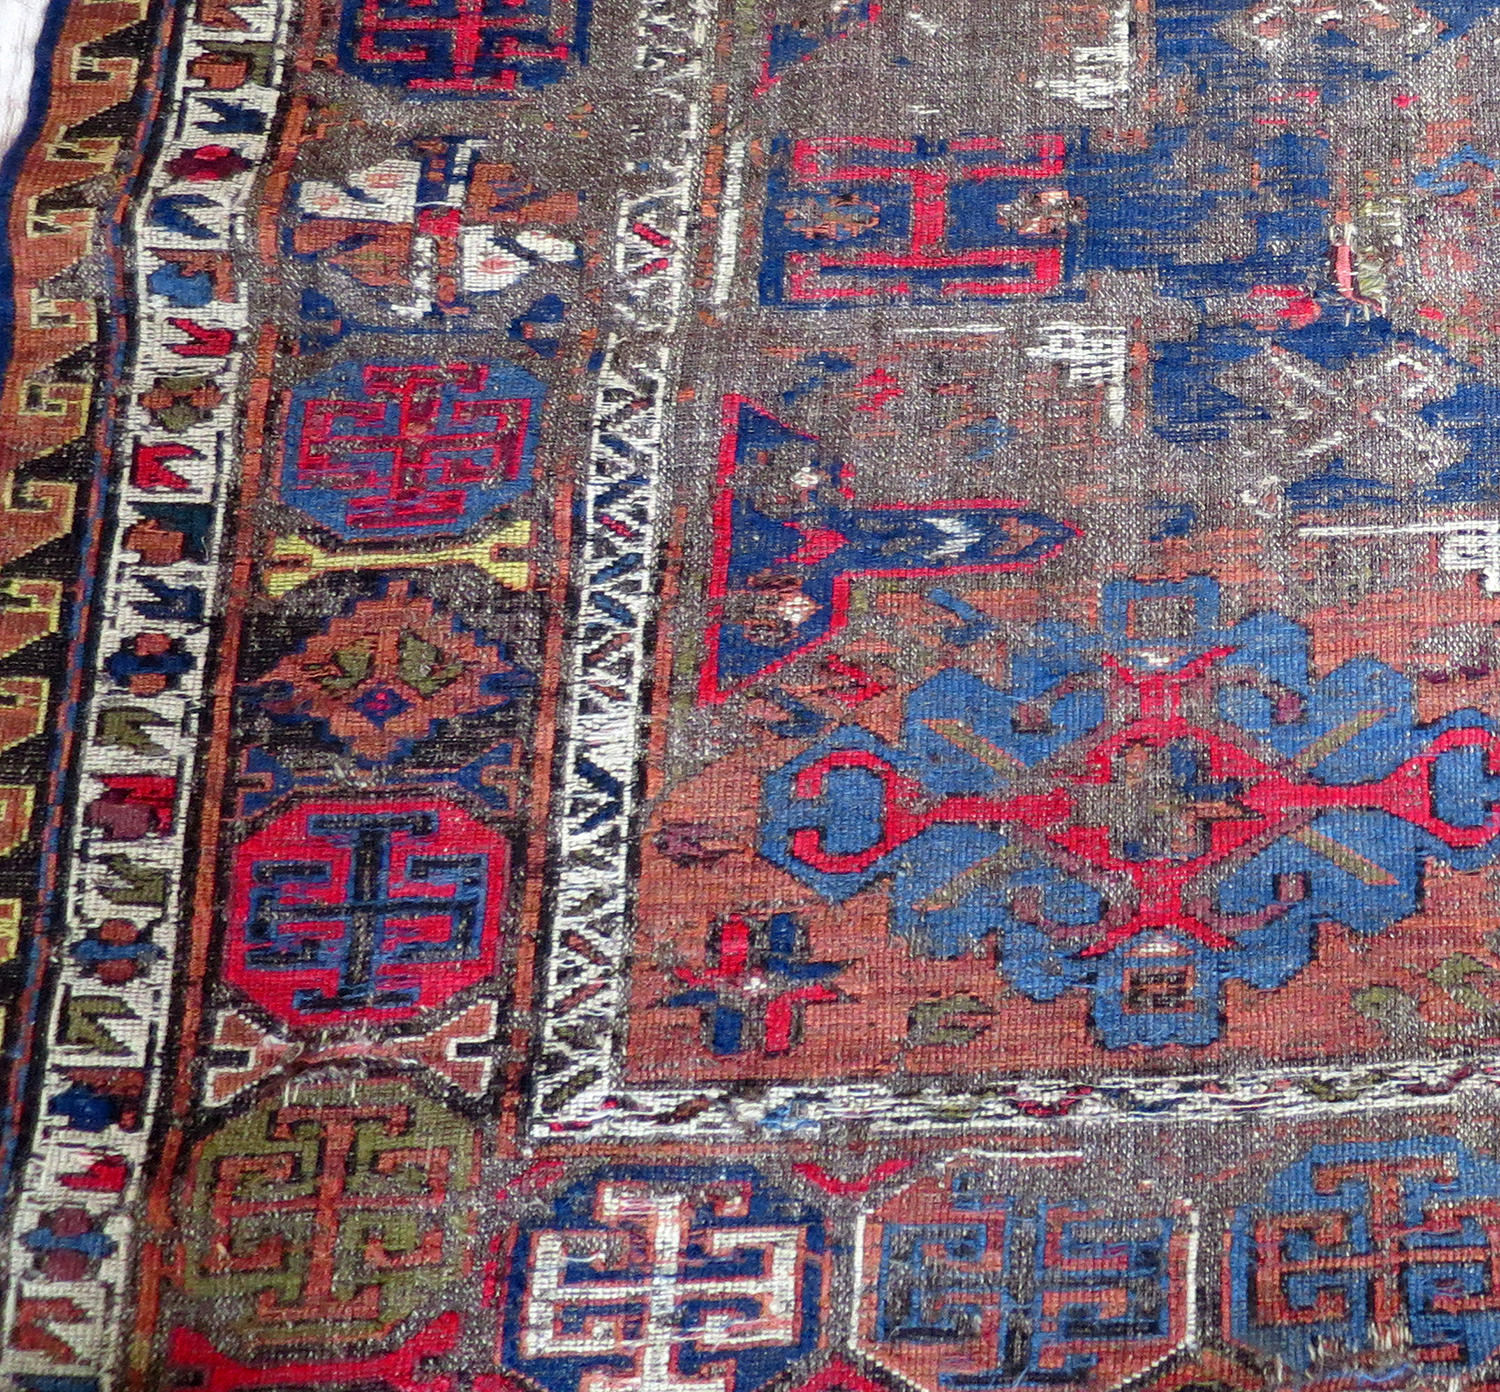 19th c Persian Soumak - worn but beautiful!